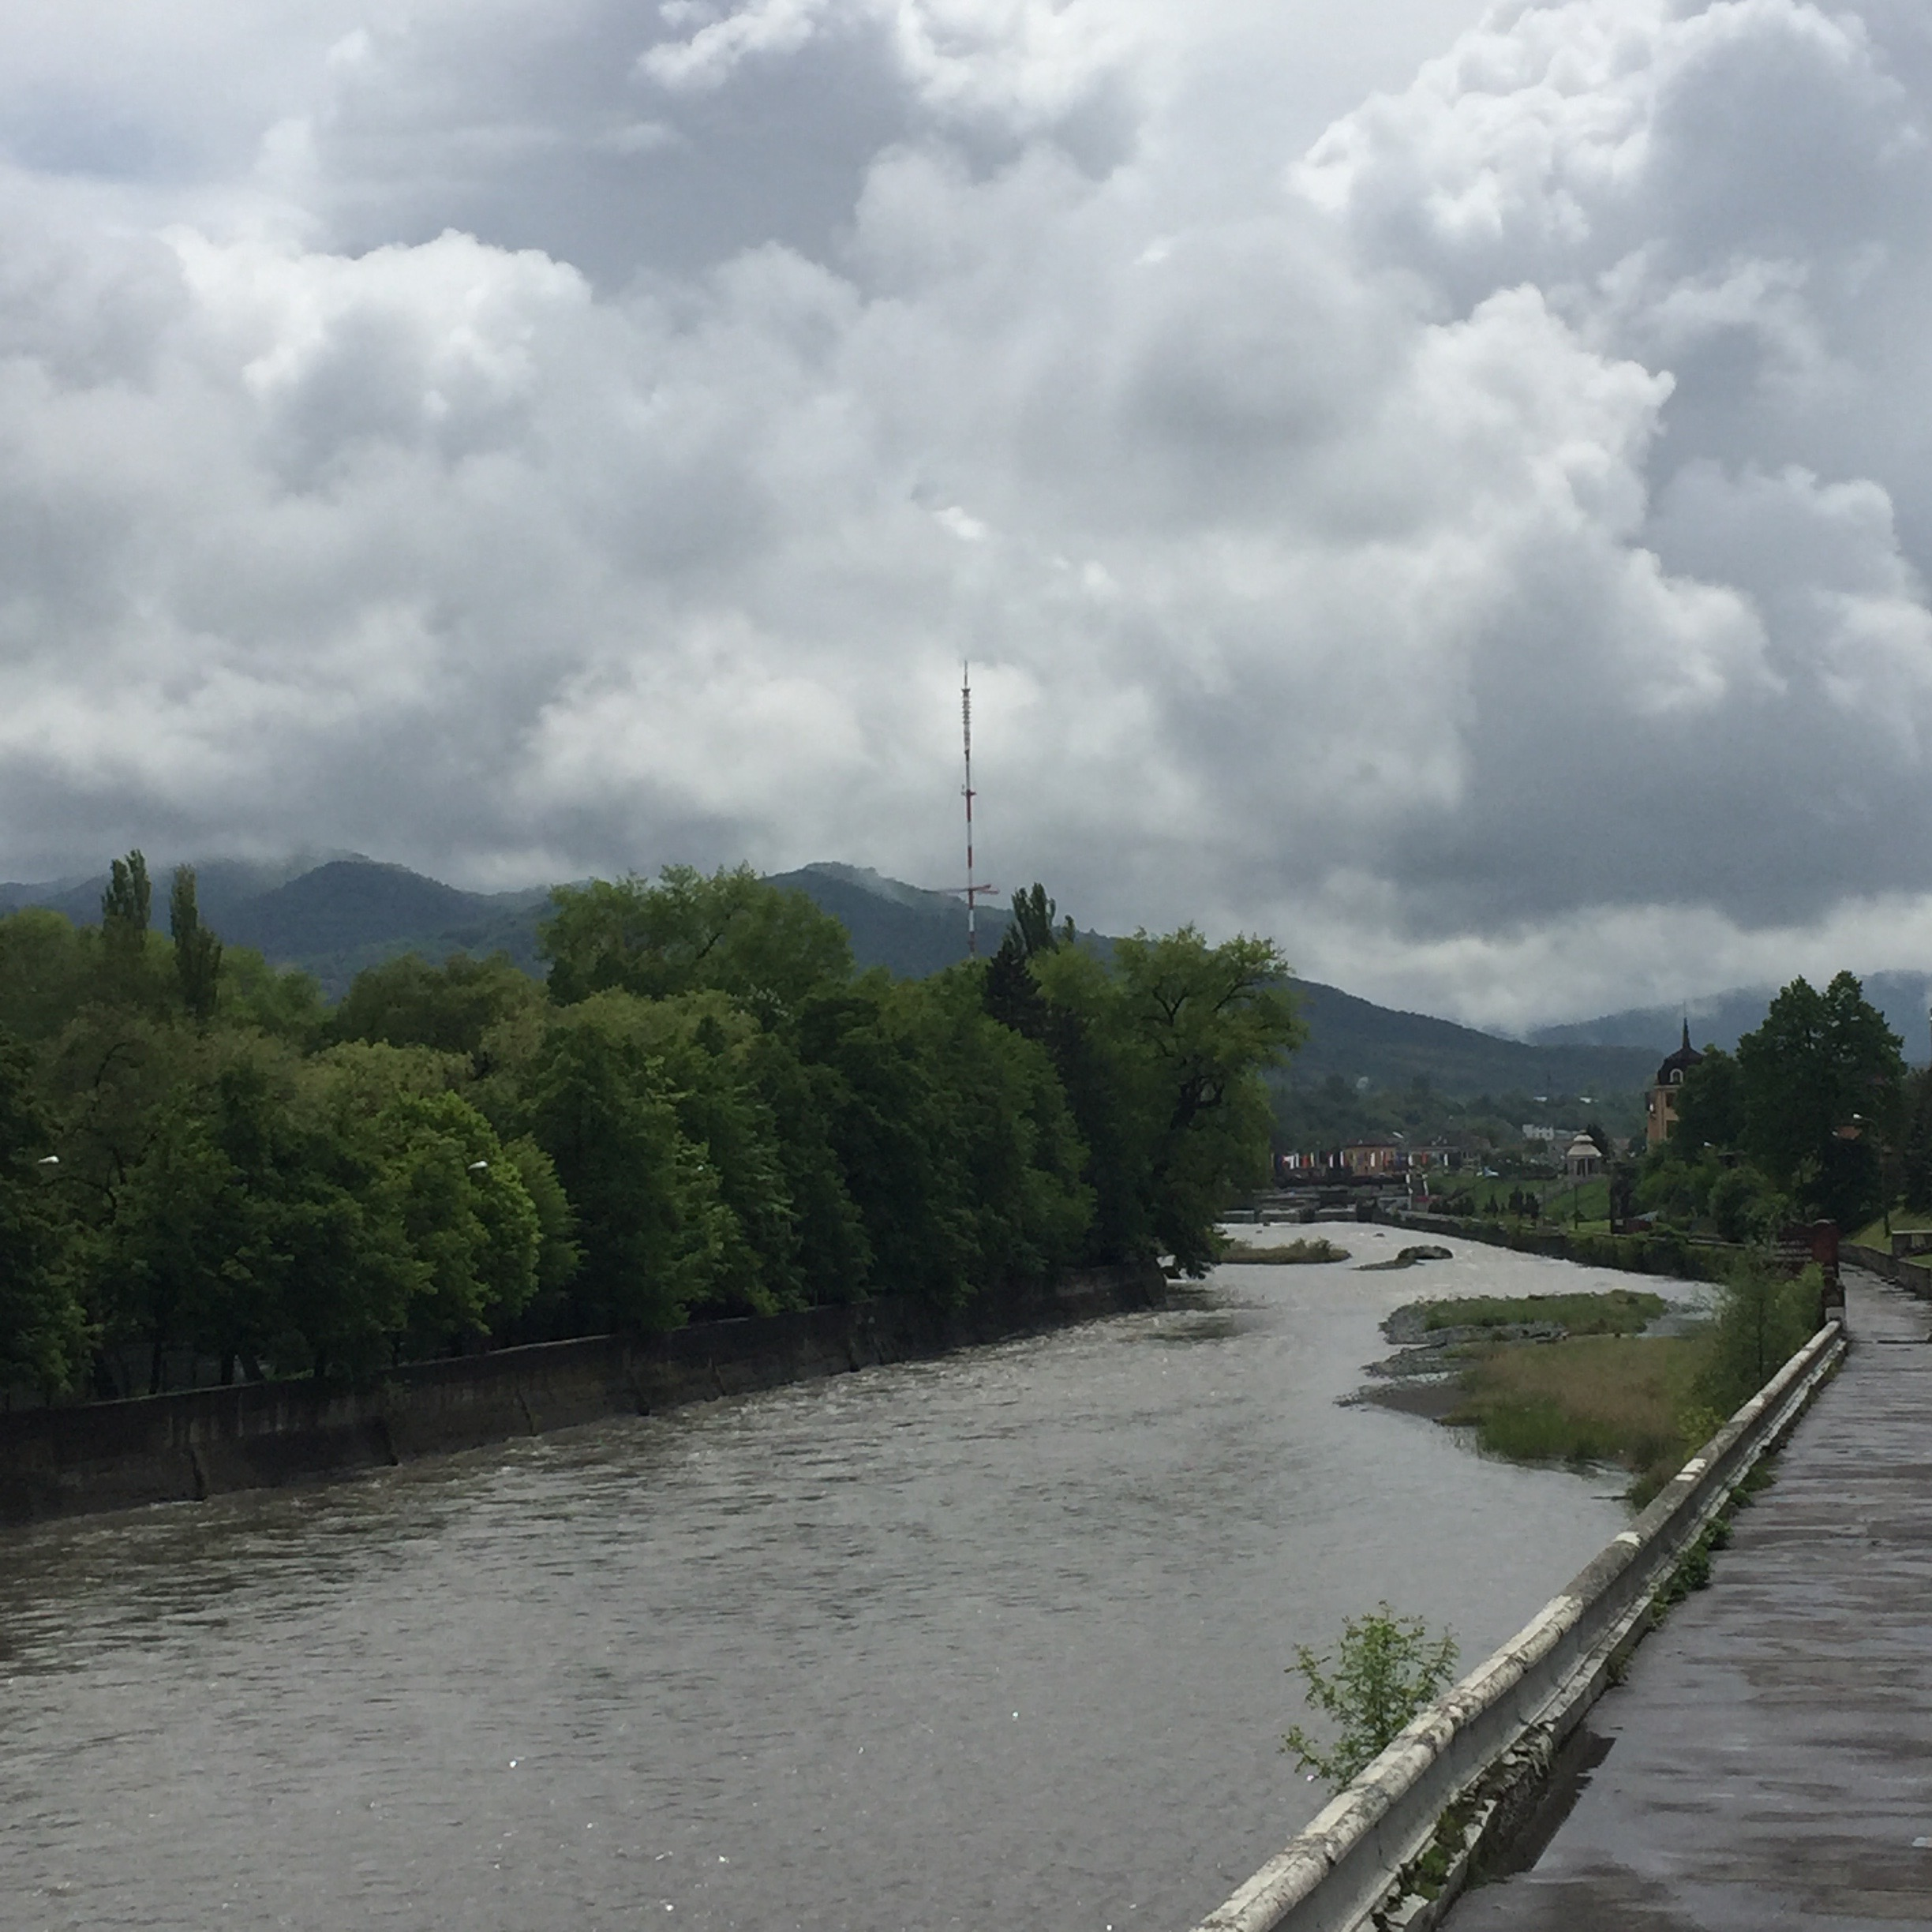 Vladikavkaz river view